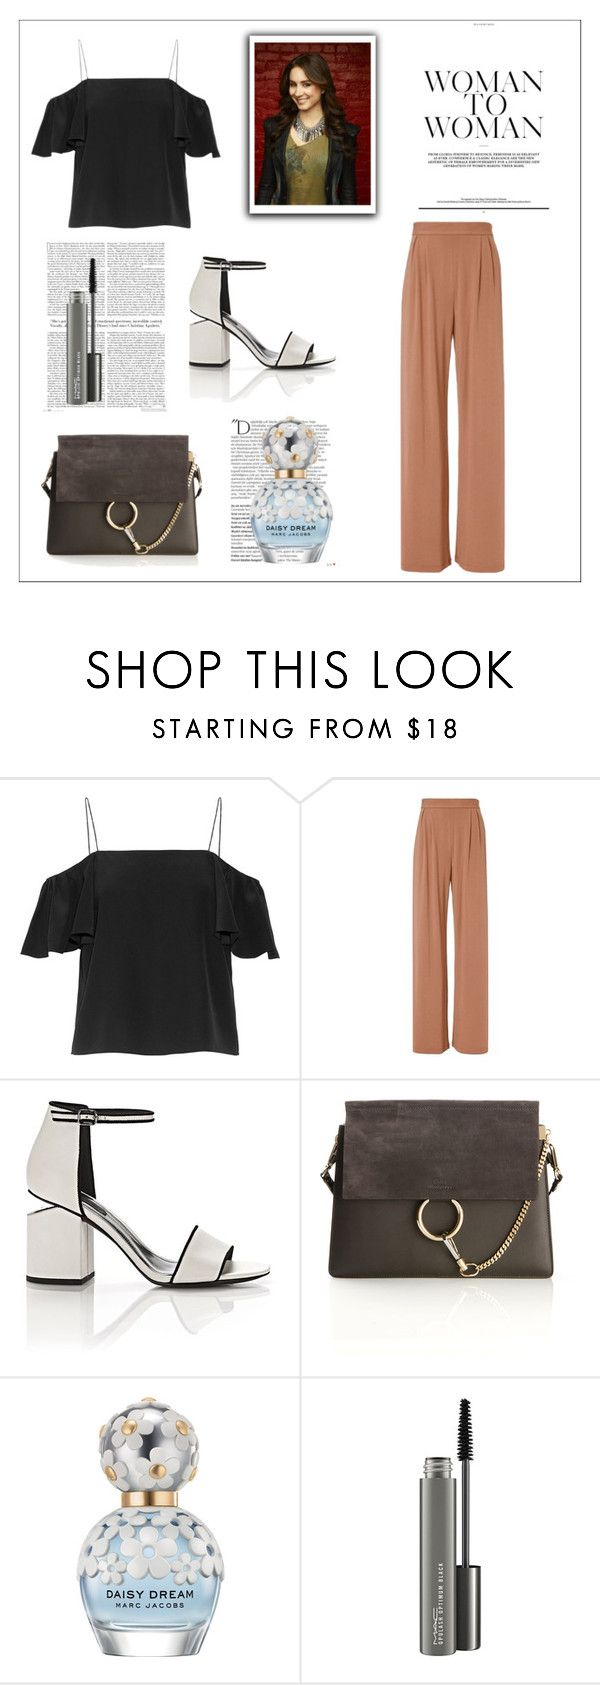 """""""Spencer Hastings"""" by spencer-hastings-5 ❤ liked on Polyvore featuring Fendi, Fleur du Mal, Alexander Wang, Chloé, Balmain, Marc Jacobs and MAC Cosmetics"""